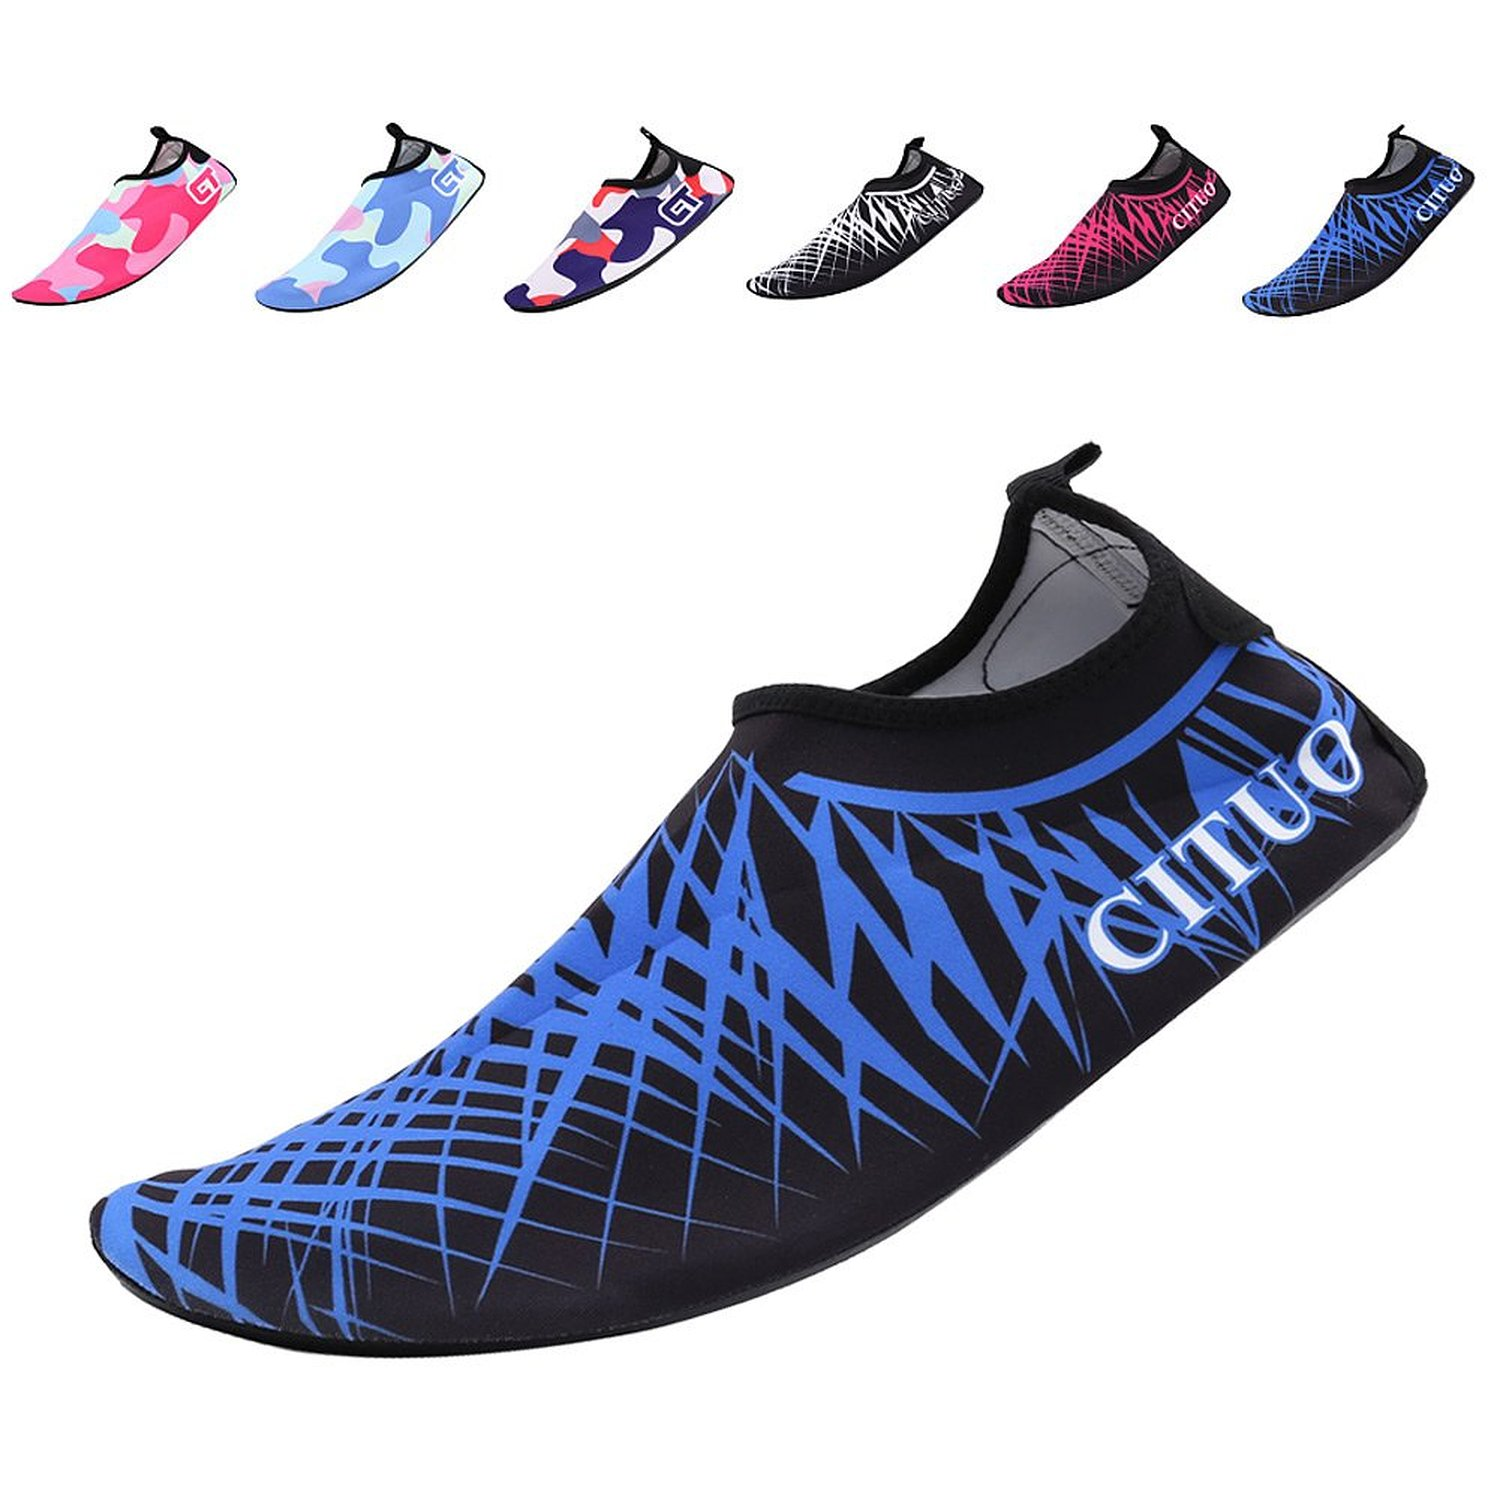 7a1444e2433d CIOR Water Shoes Men and Women Barefoot Skin Aqua Shoesfor Beach Pool Surf  Yoga Exercise